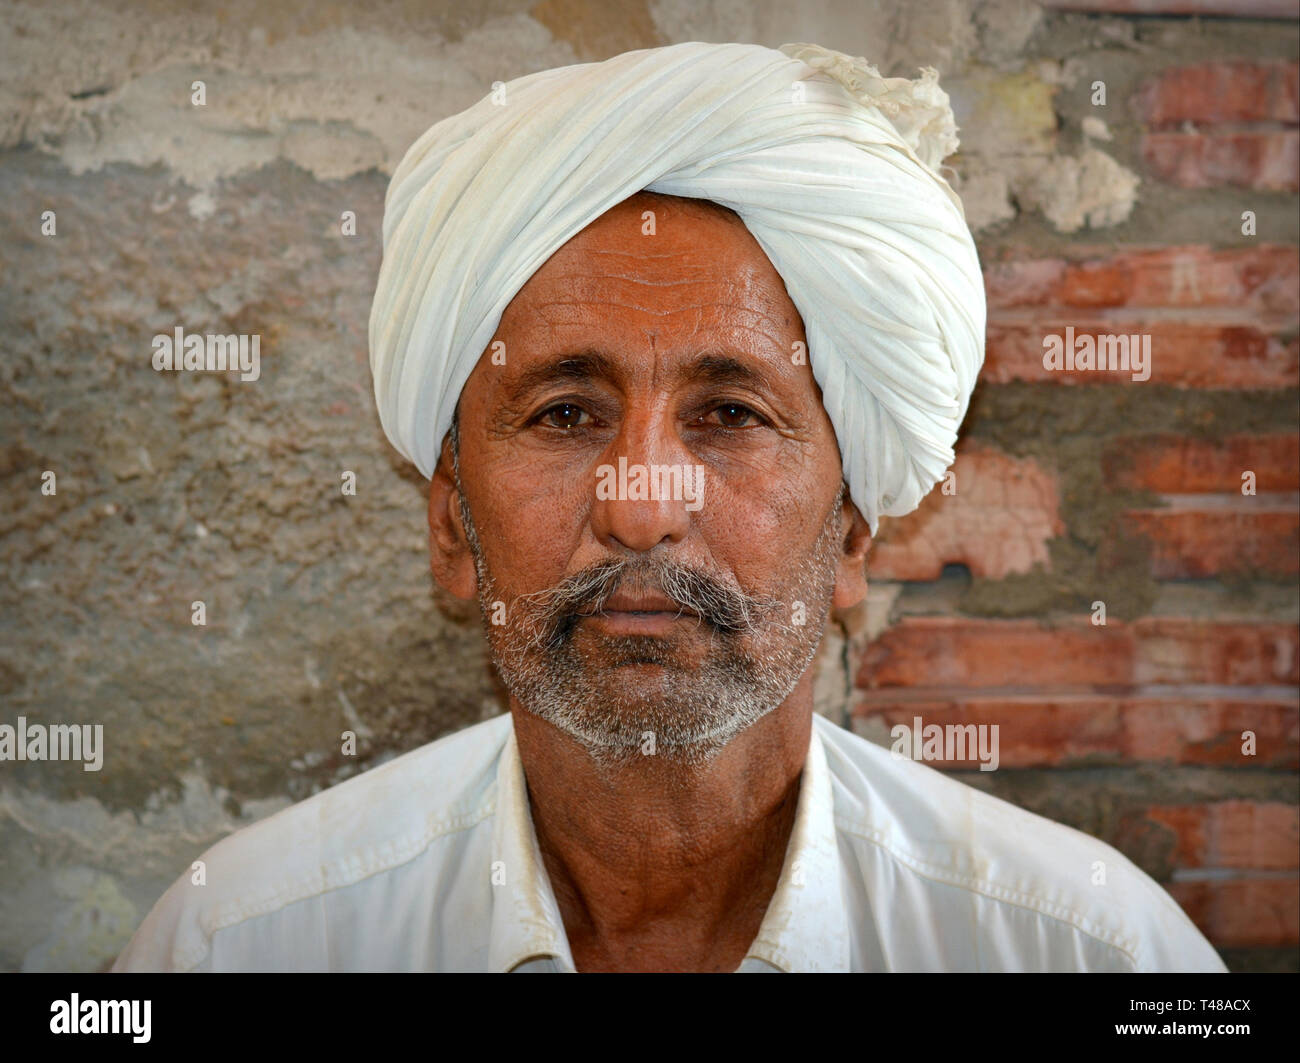 Tribal chief from the Thar Desert wears his signature headdress, a white Rajasthani turban (pagari) and poses for the camera. - Stock Image